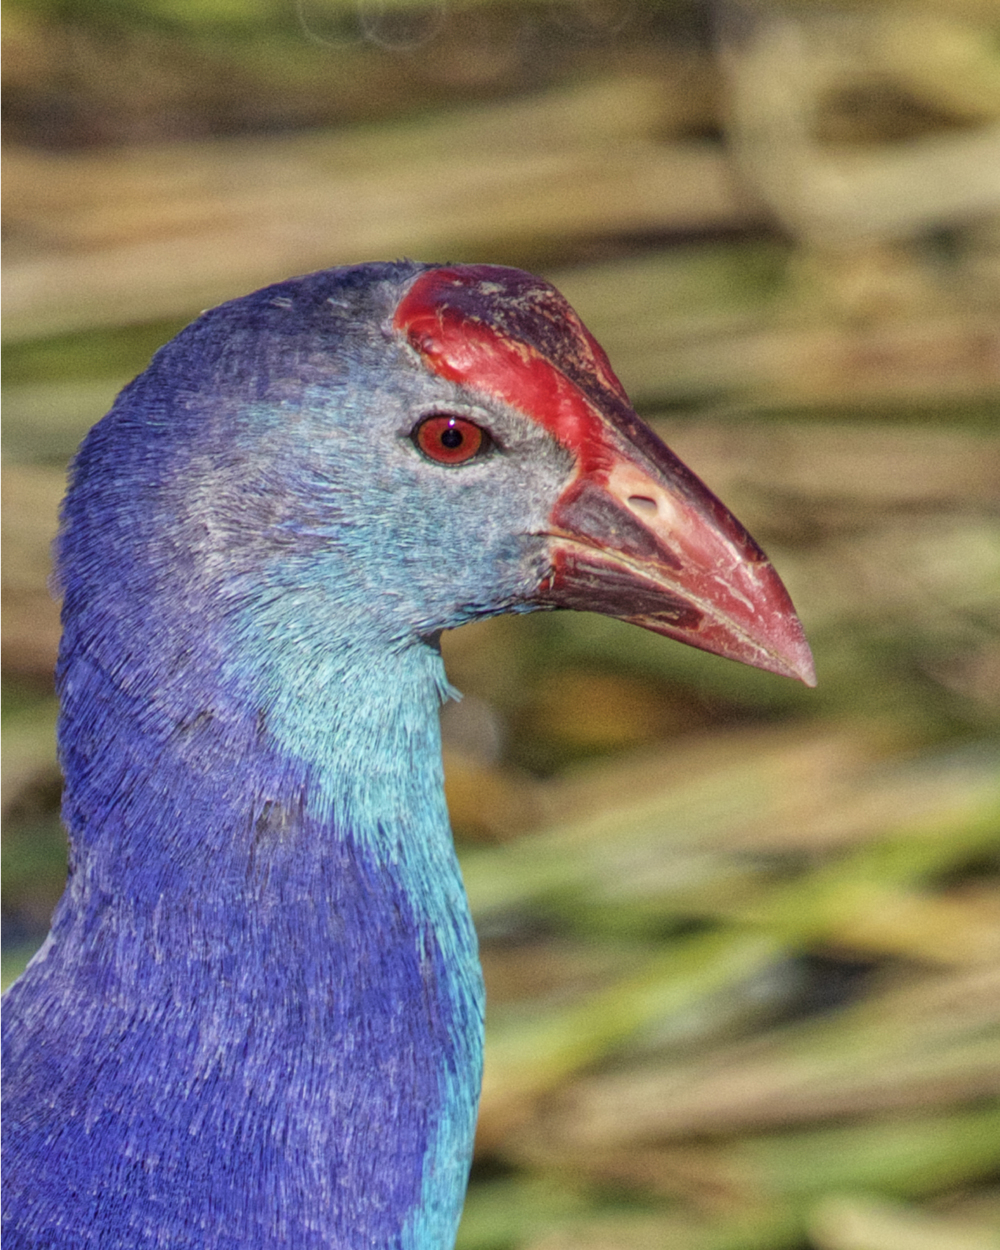 Often mistaken for a Purple Gallinule, the Purple Swamphen is also a member of the rail family.